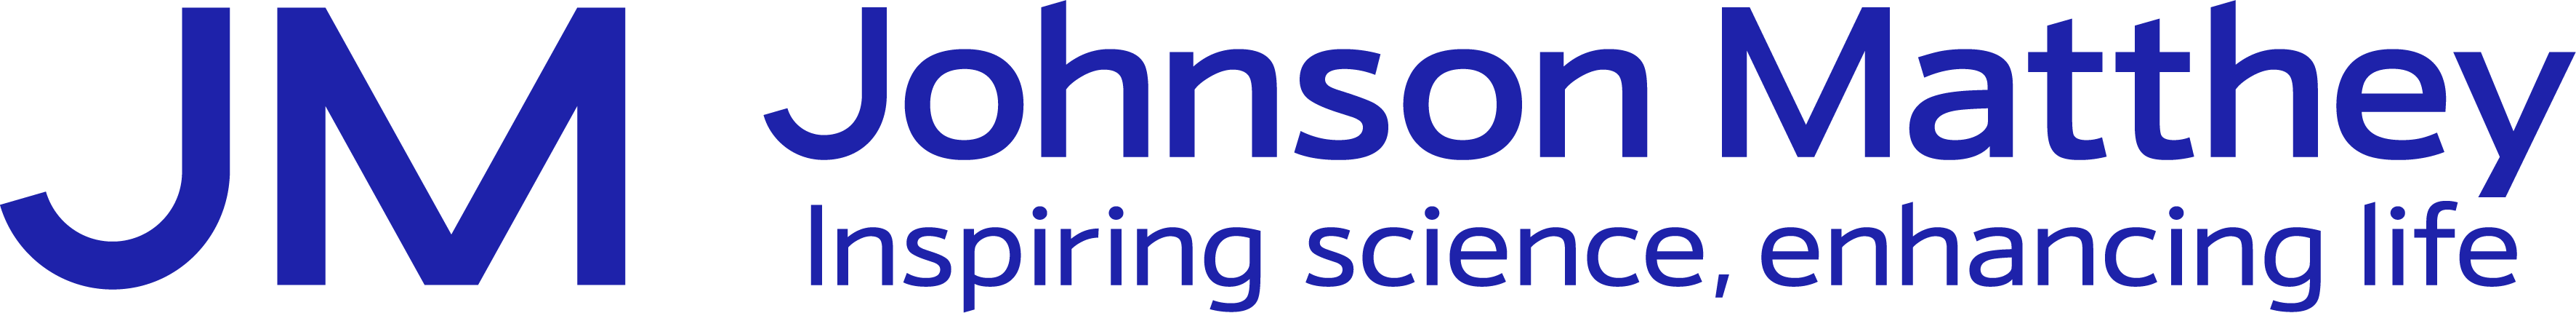 Johnson-Matthey logo